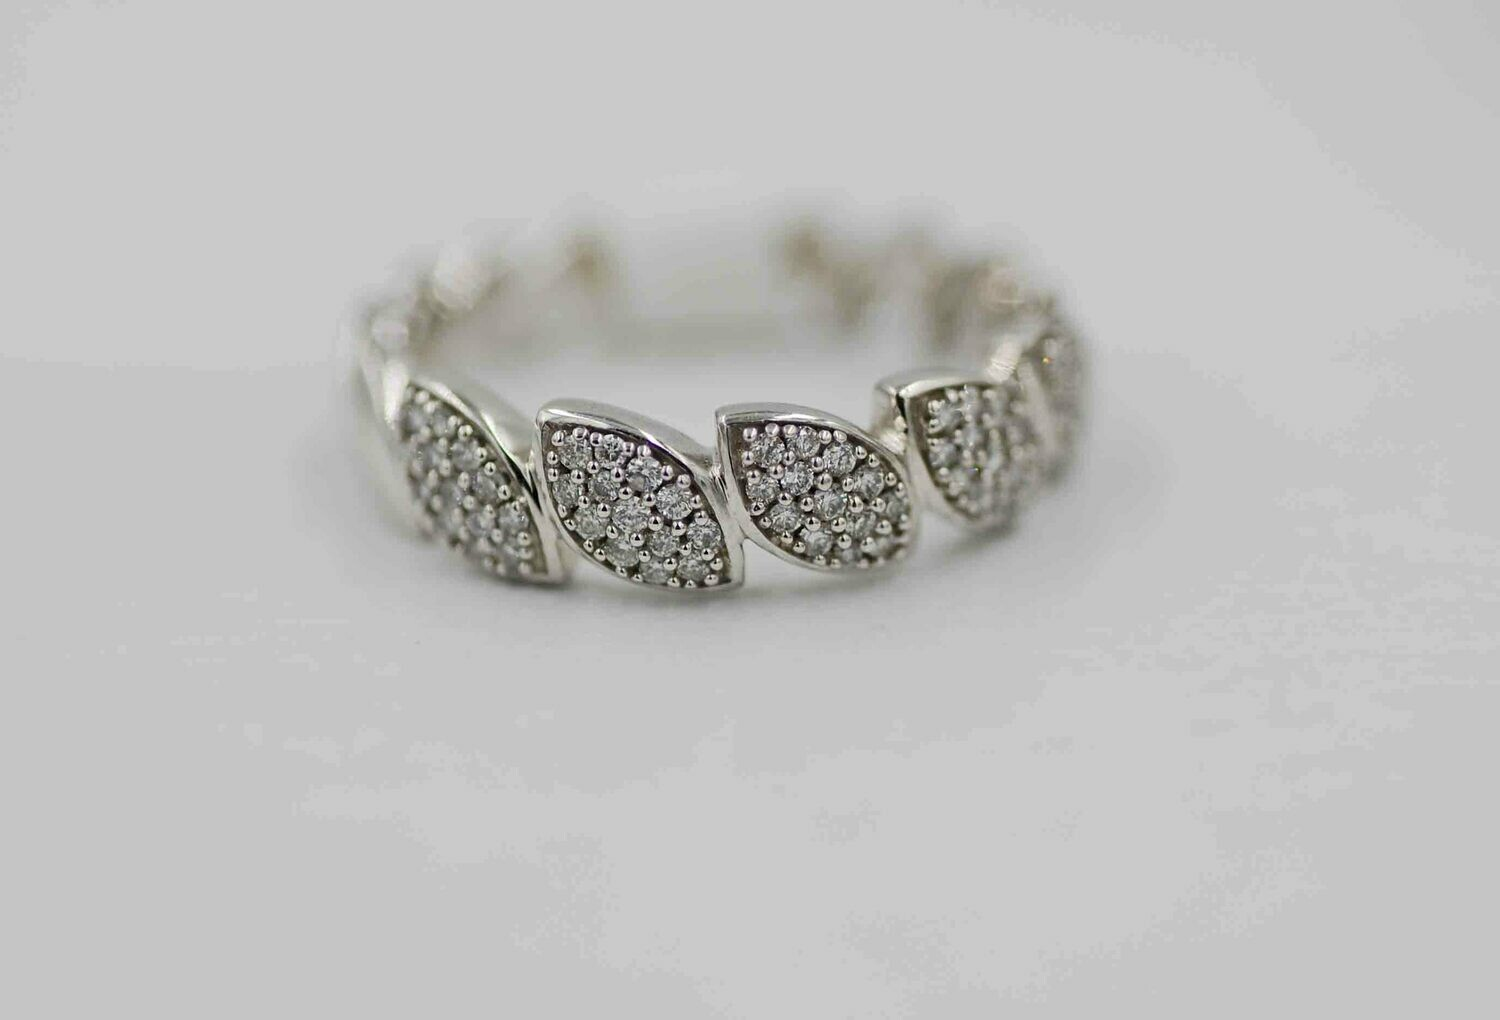 10k wg marquise shape pave' band using .25cttw RBC diamonds